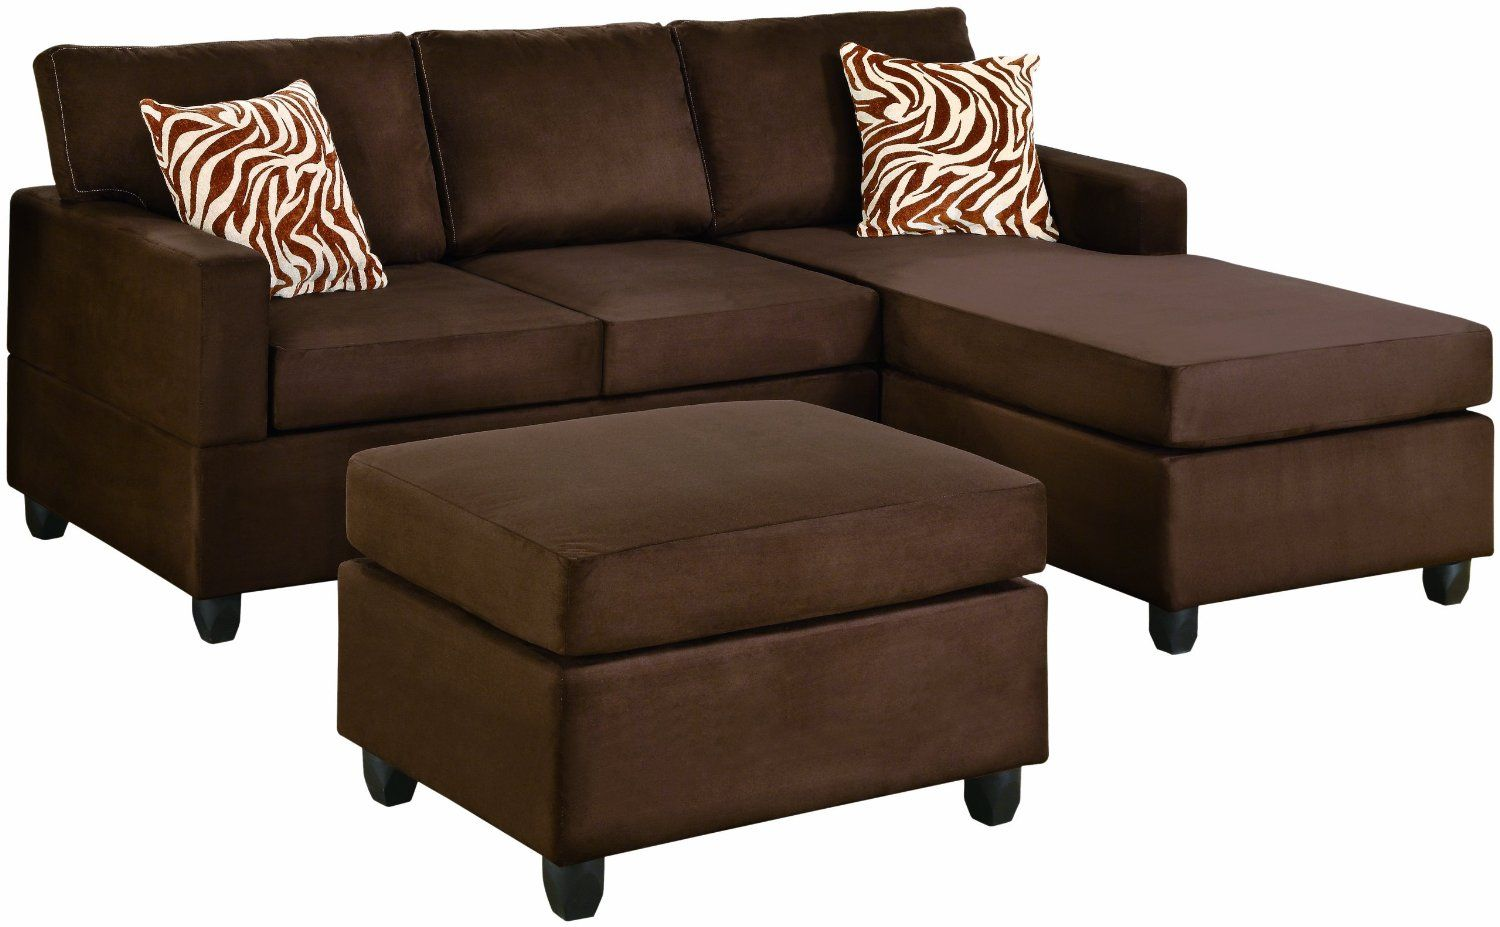 Charming Bobkona Manhattan Reversible Microfiber 3 Piece Sectional Sofa Set,  Chocolate #sofa #furniture